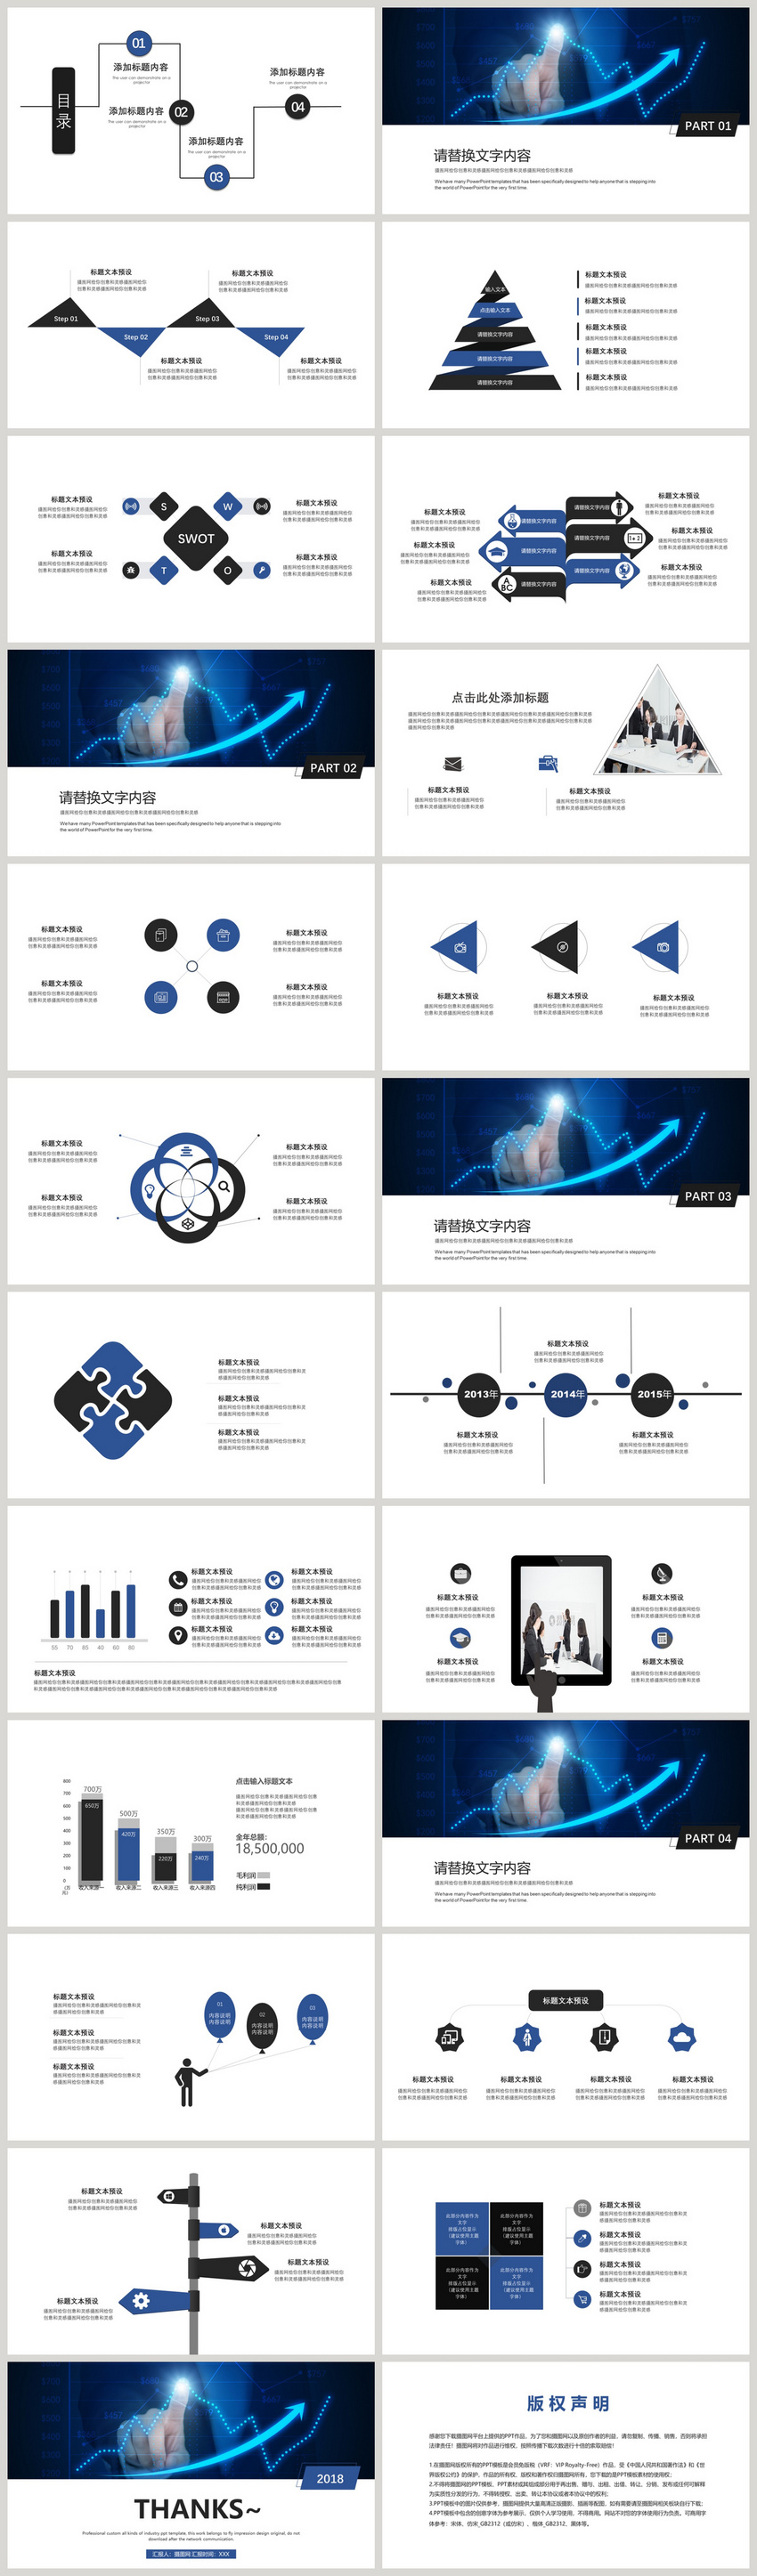 Blue technology finance department reports ppt template powerpoint blue technology finance department reports ppt template toneelgroepblik Gallery